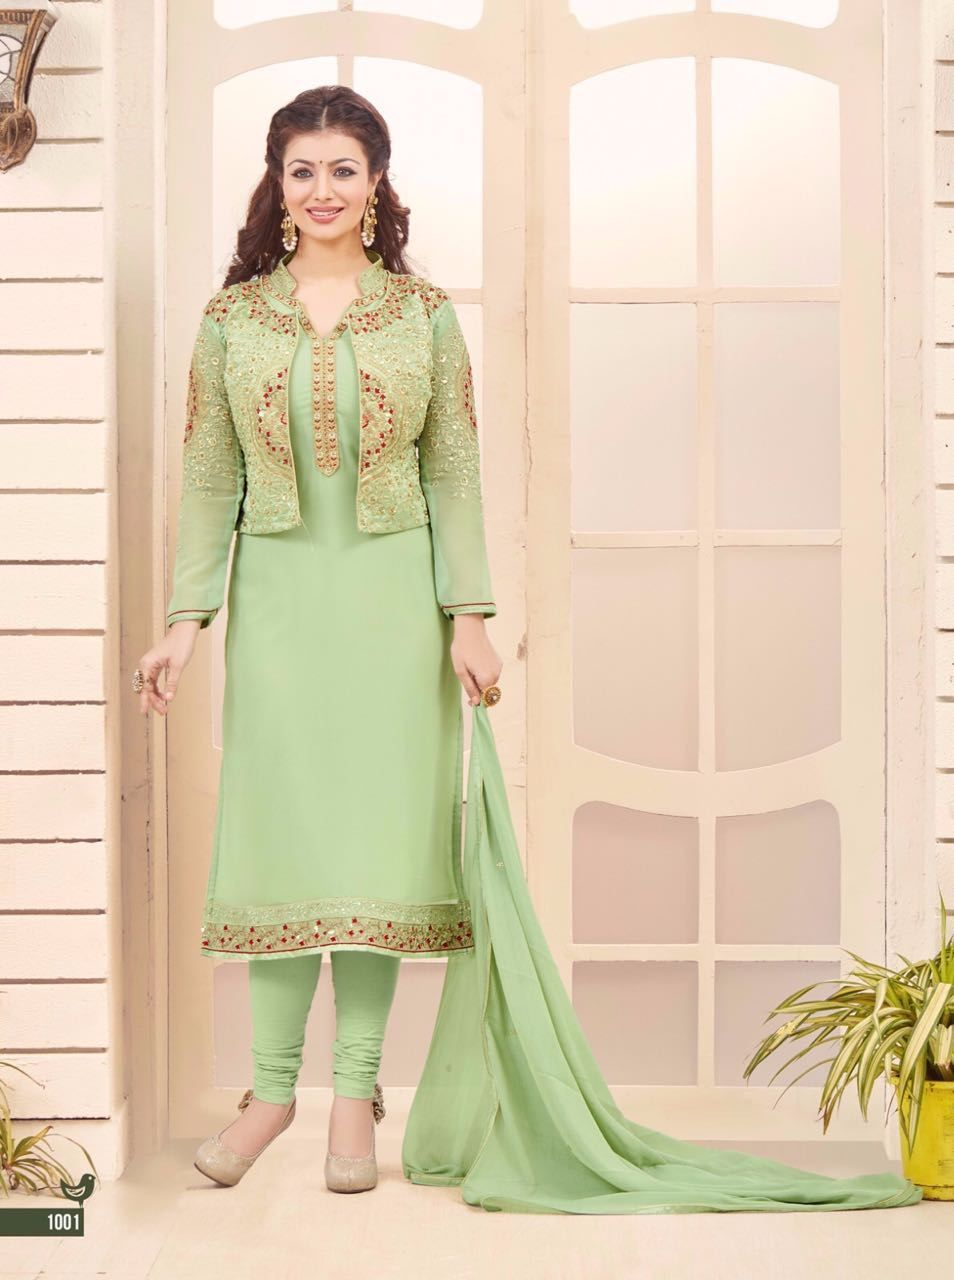 f0b961837c VINAY FASHION REPLICA BY AYESHA TAKIA DESIGNER SALWAR SUIT BRAND VINAY  FASHION REPLICA BY AYESHA TAKIA DESIGNER SALWAR SUIT NO. OF PIECES 9  AVERAGE PRICE ...